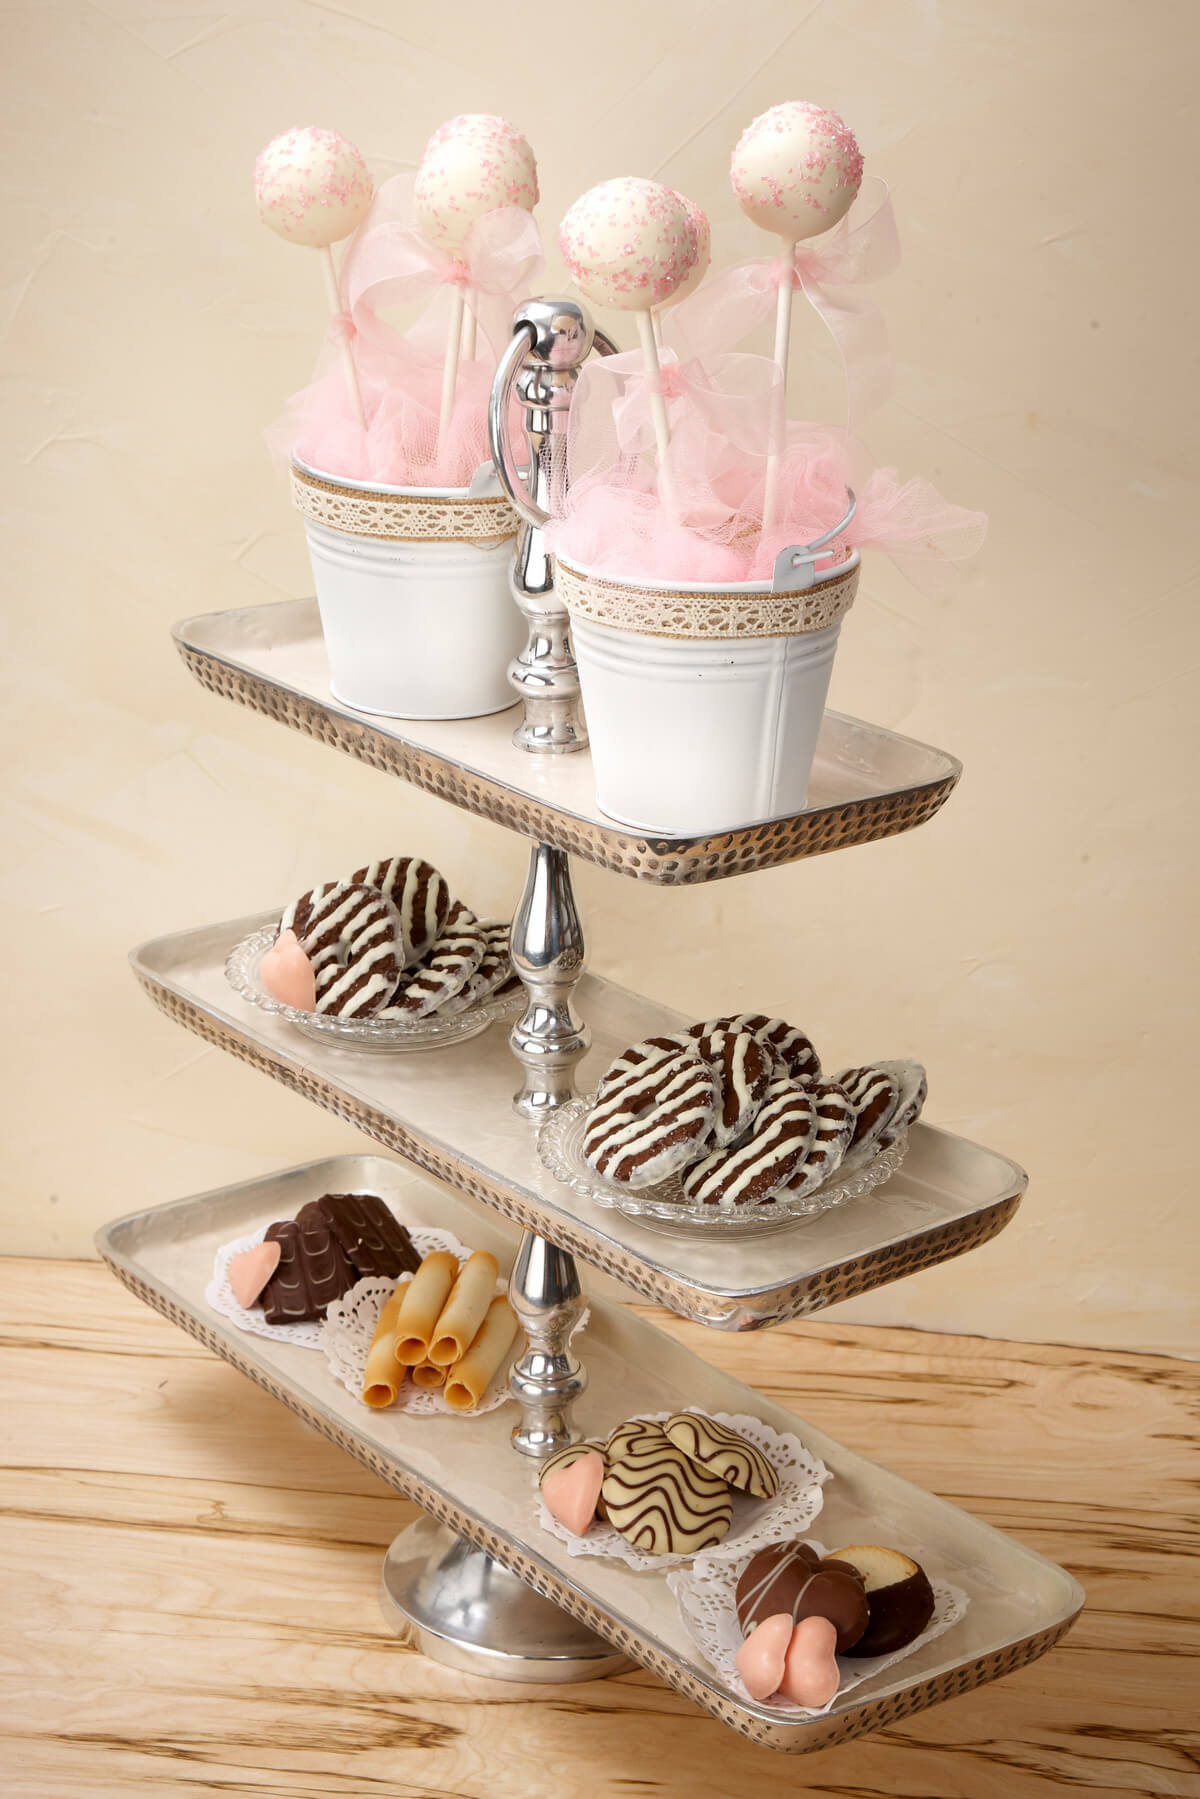 3-Tier Metal Fruit Stand 19.5in